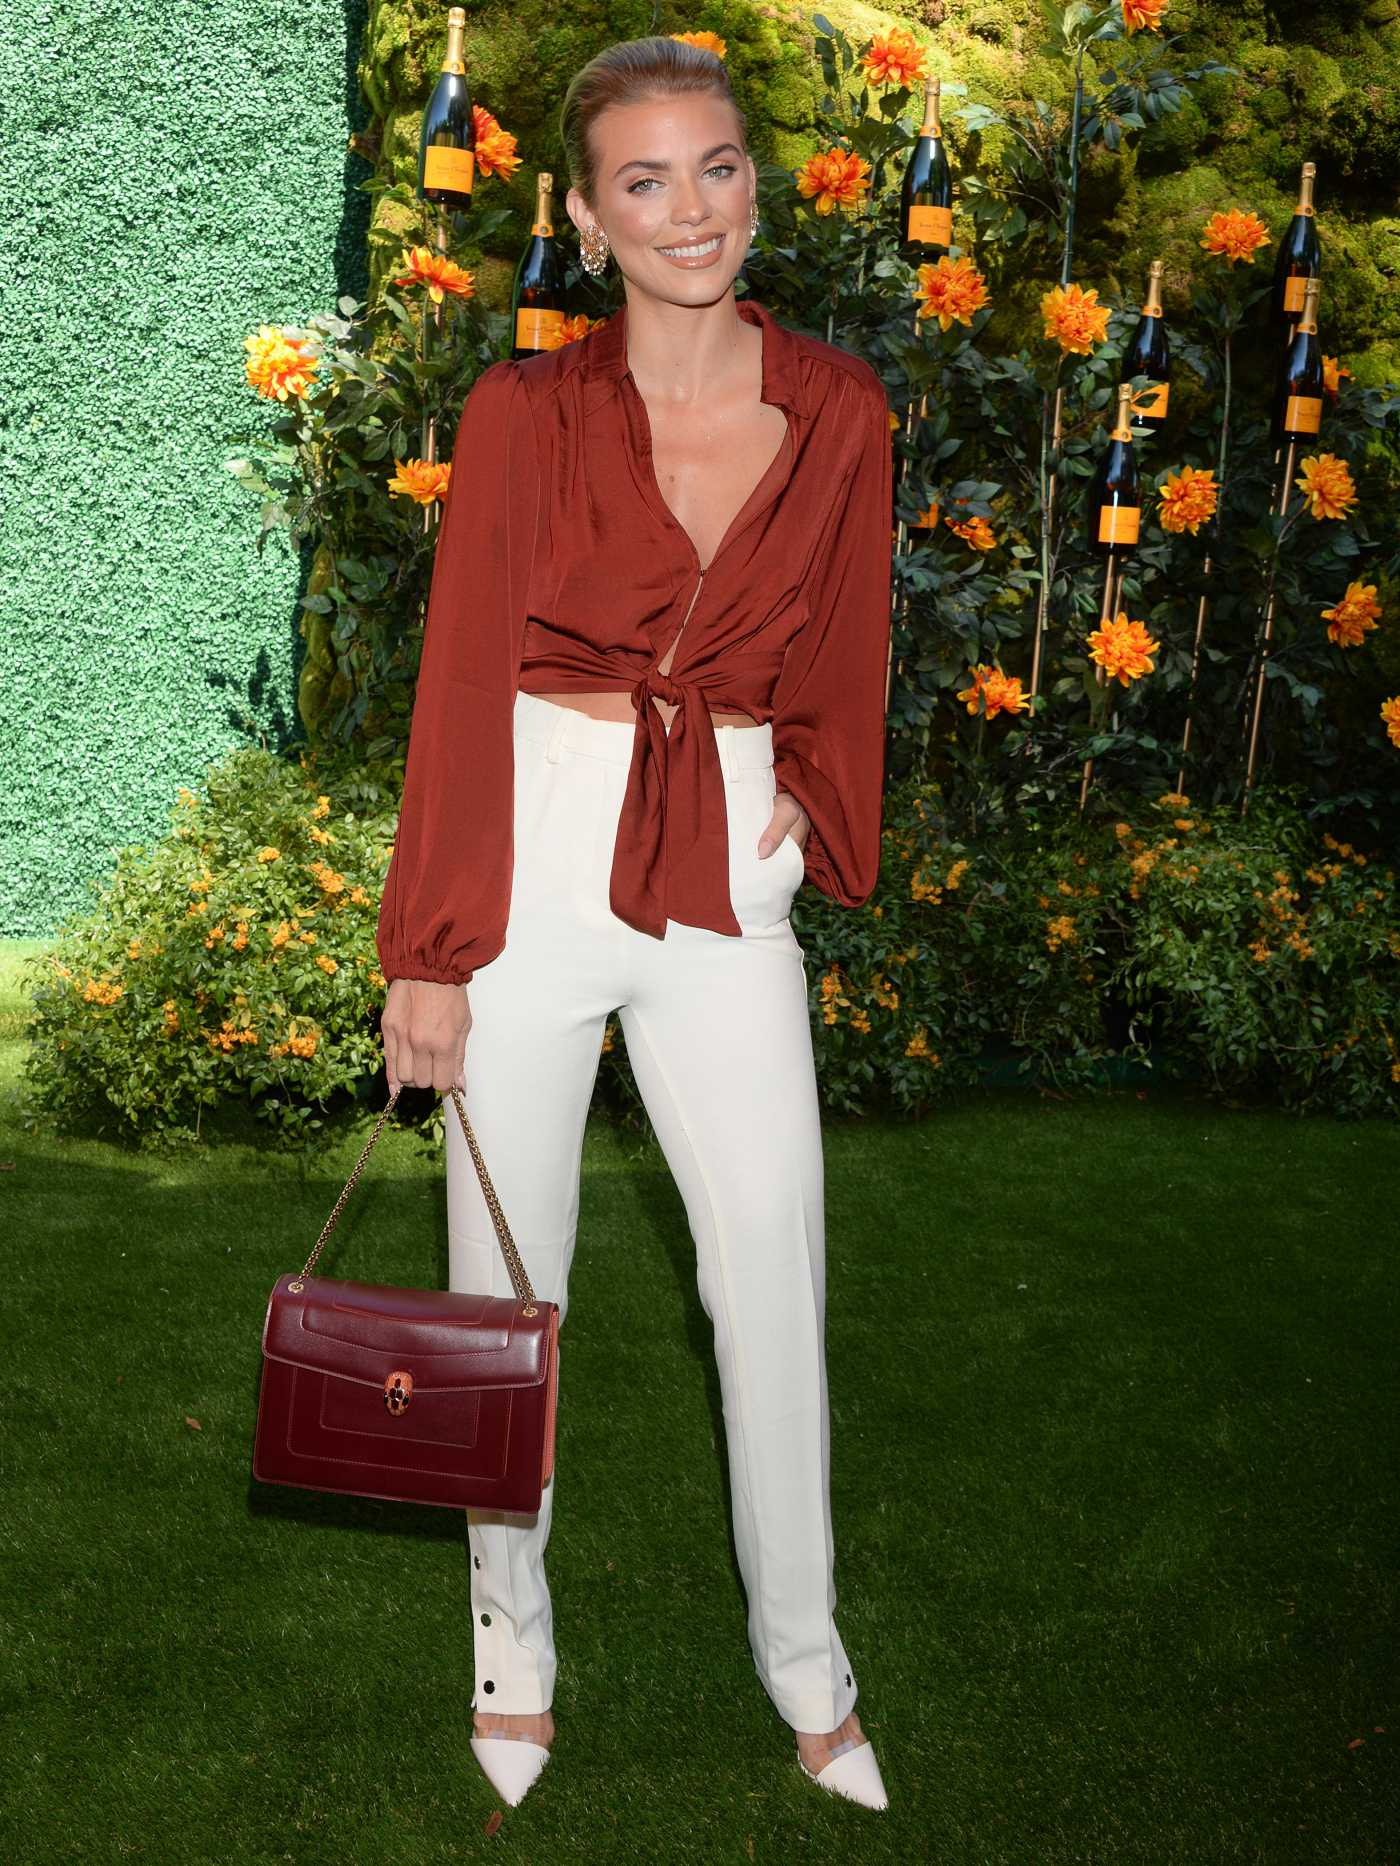 AnnaLynne McCord Attends 2019 Veuve Clicquot Polo Classic at Will Rogers State Park in LA 10/05/2019